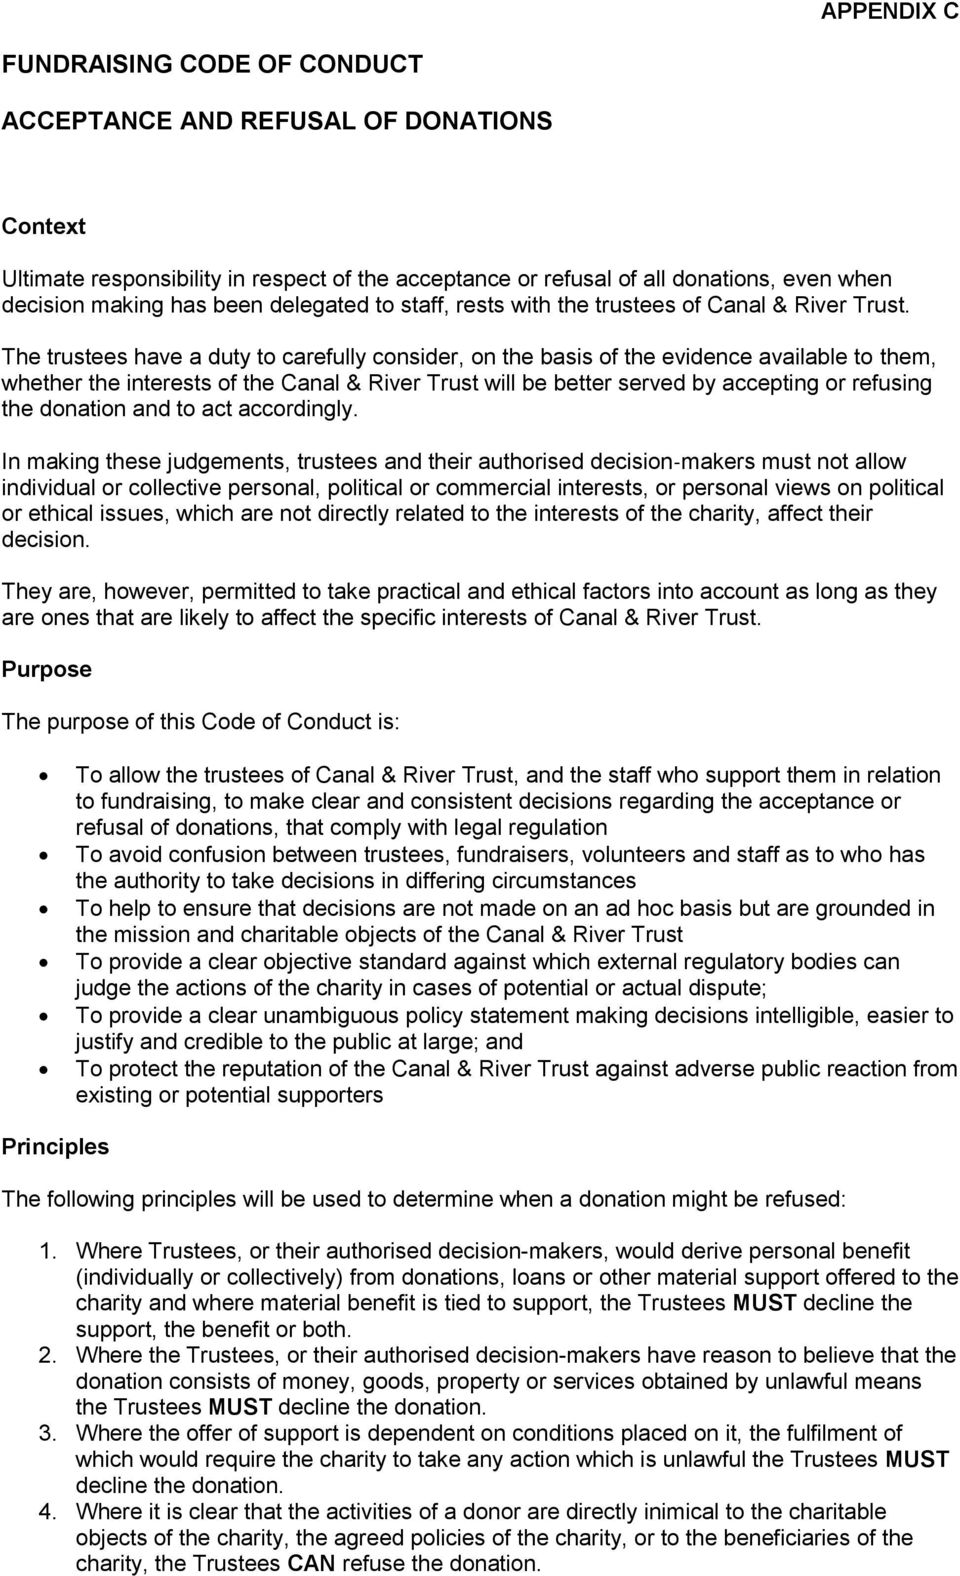 The trustees have a duty to carefully consider, on the basis of the evidence available to them, whether the interests of the Canal & River Trust will be better served by accepting or refusing the